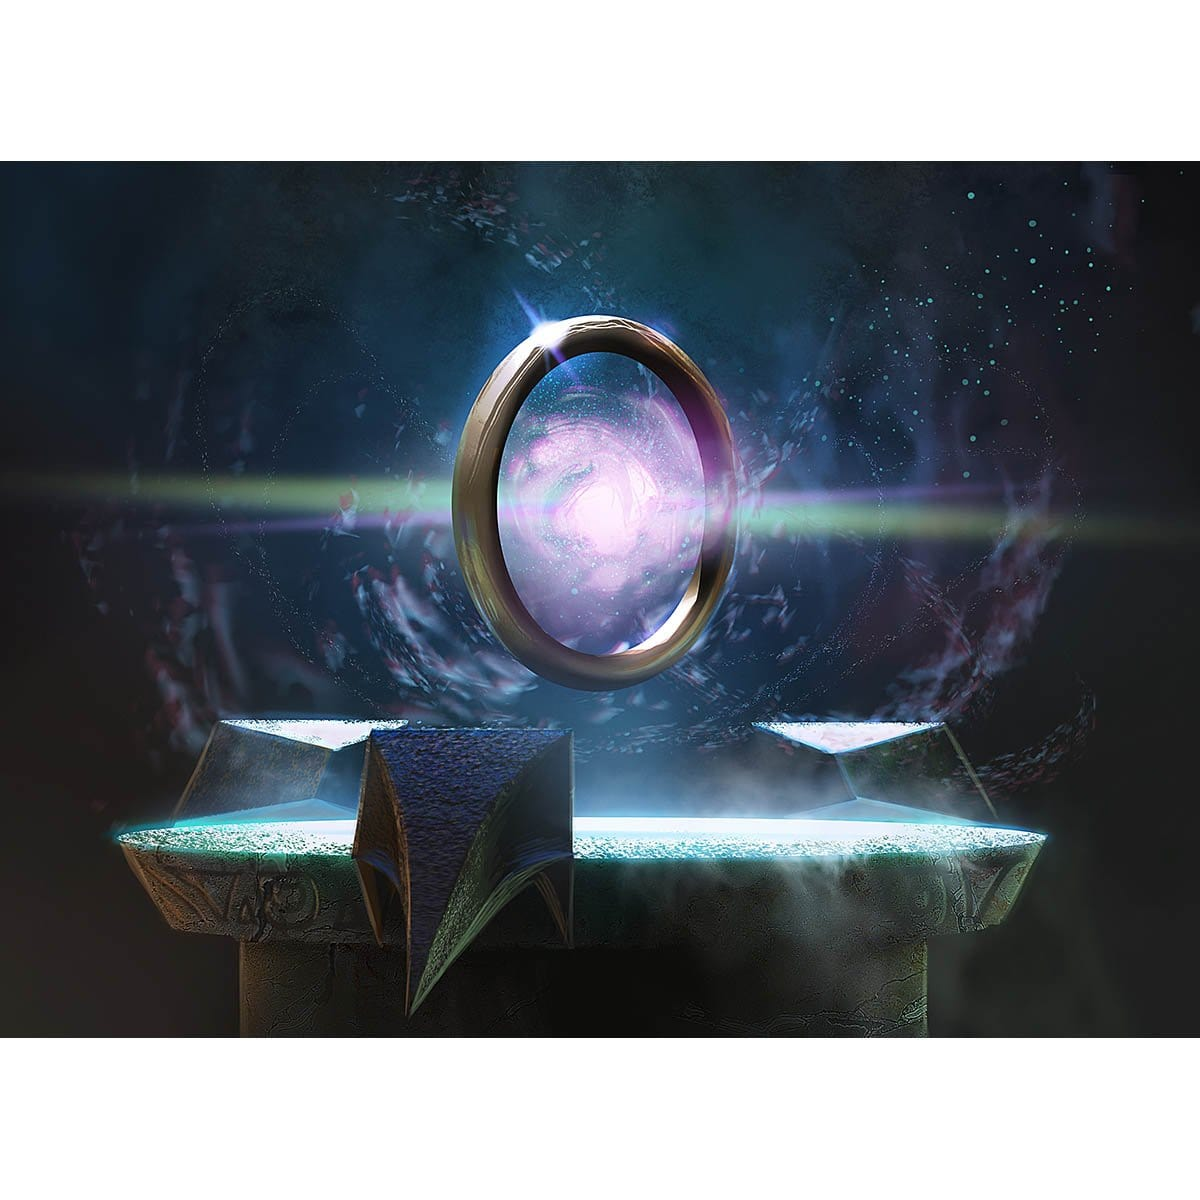 Sol Ring Print - Print - Original Magic Art - Accessories for Magic the Gathering and other card games